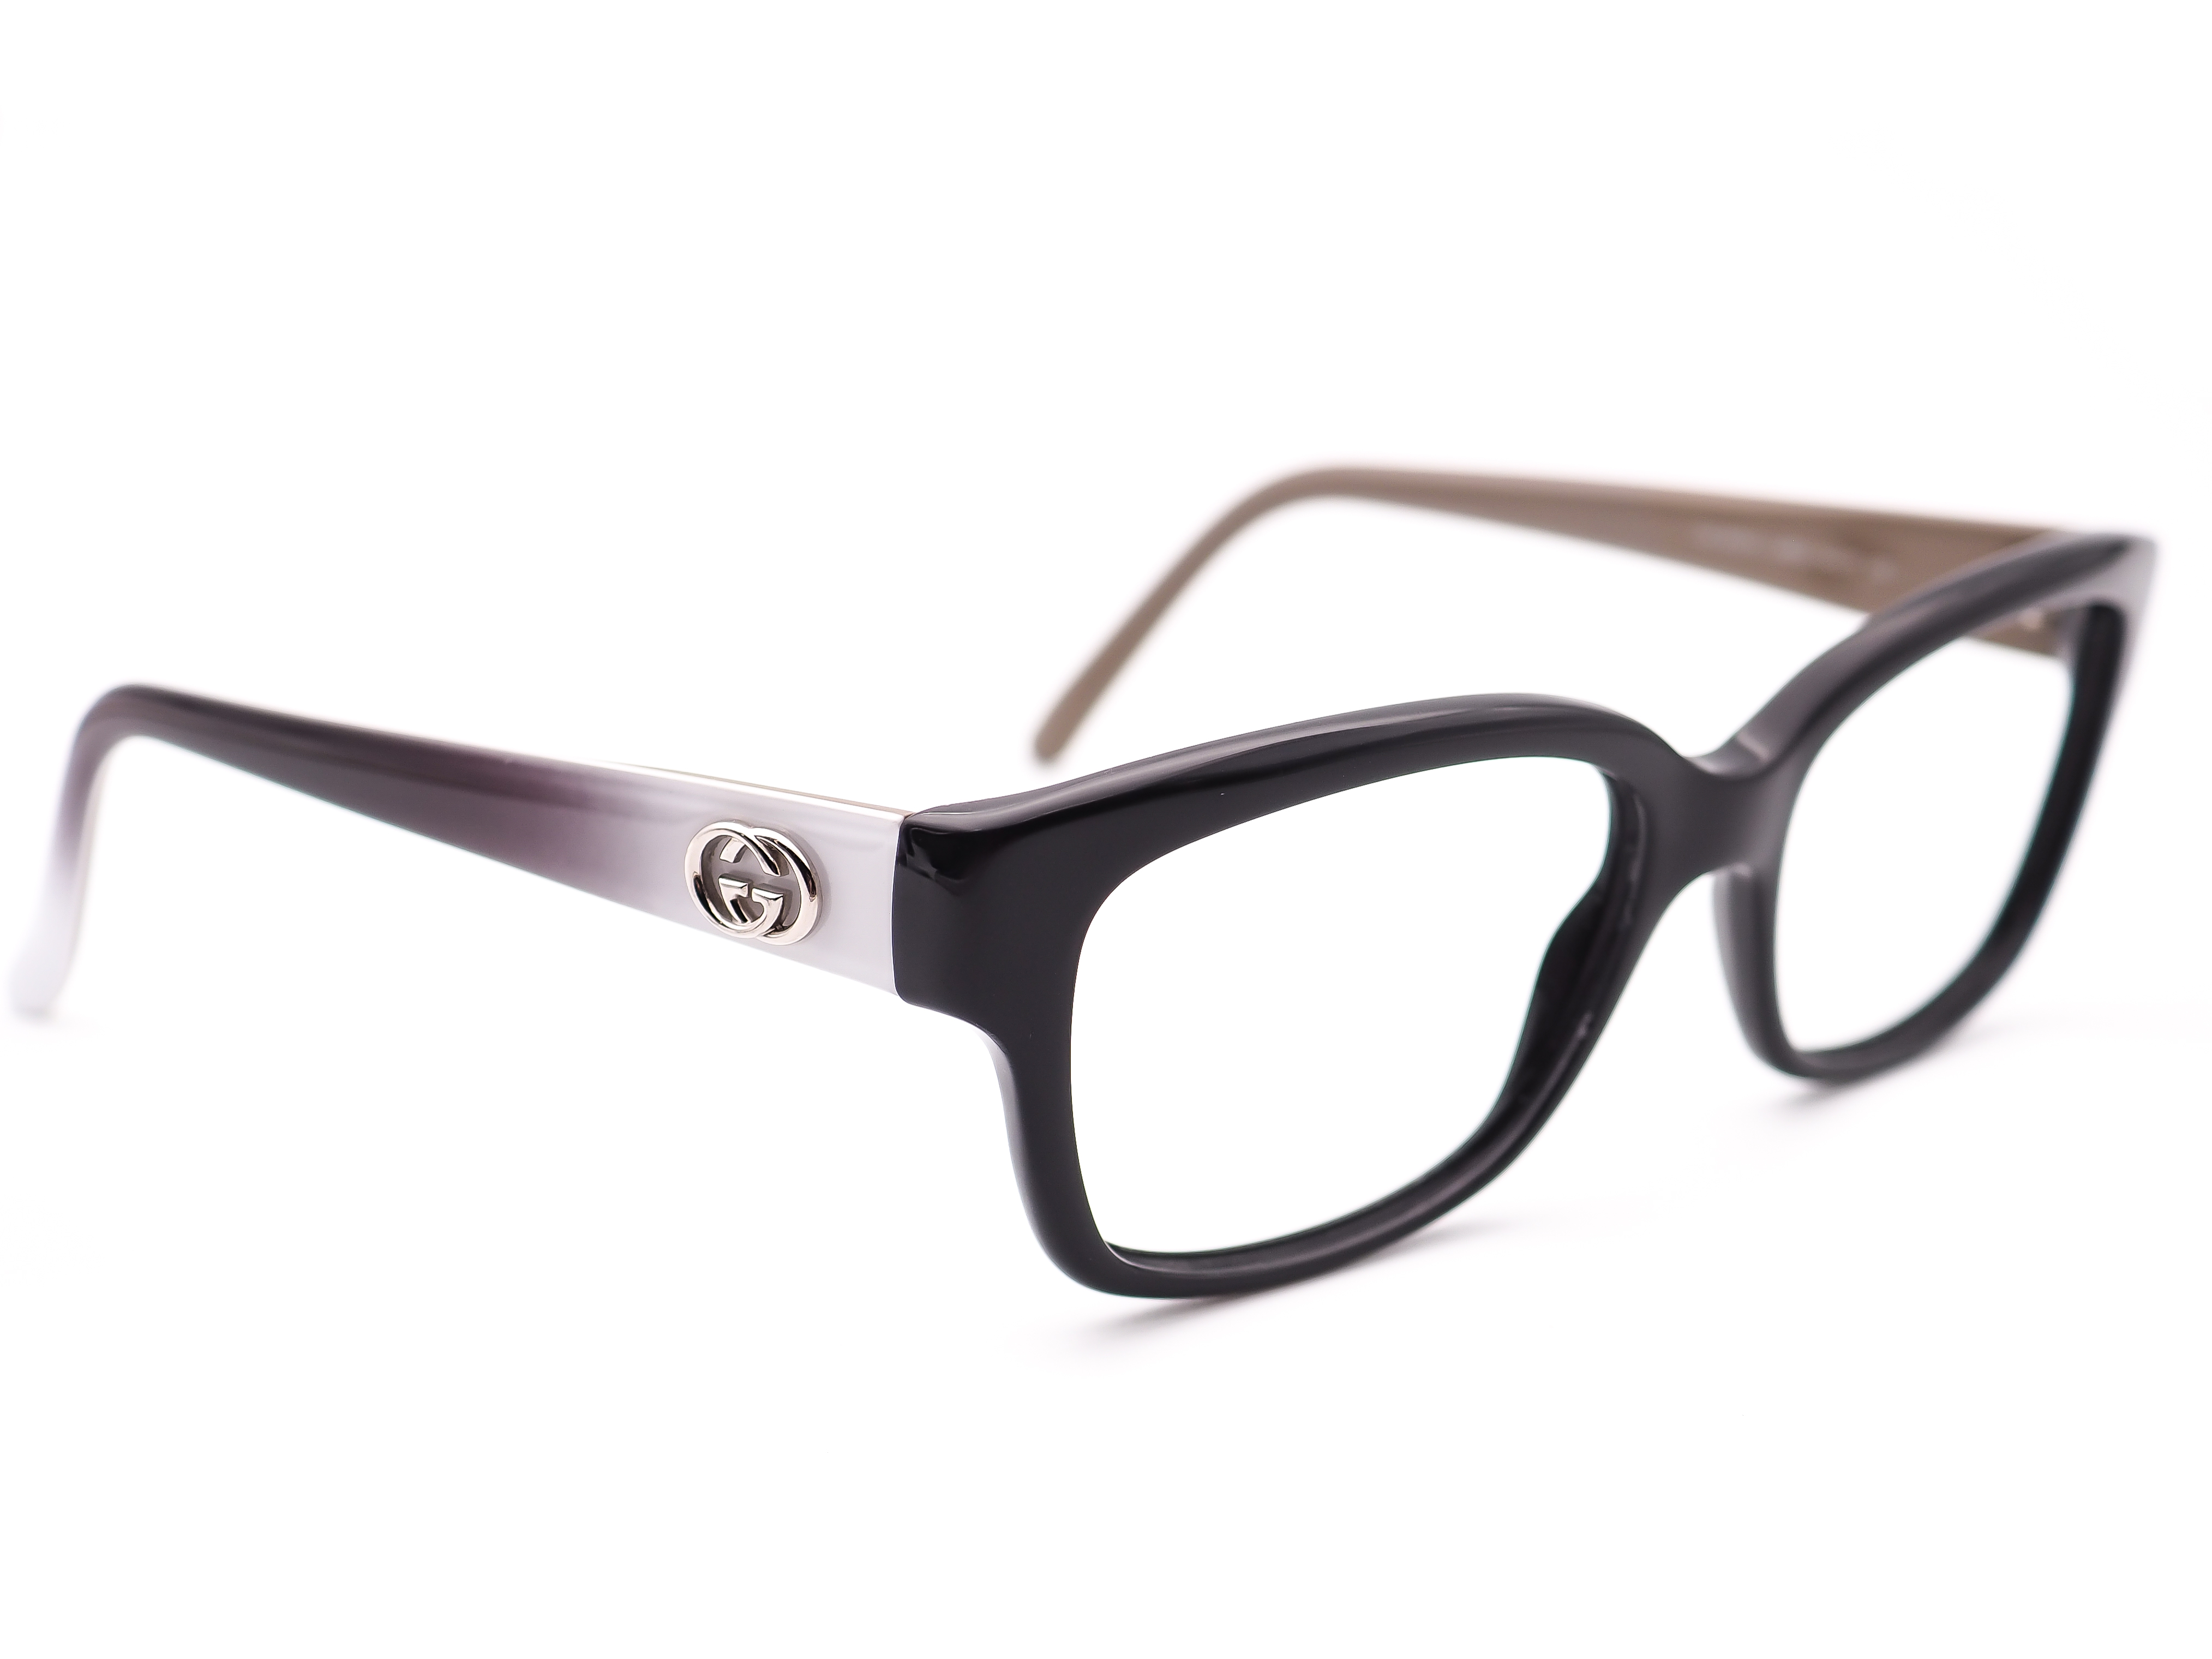 Gucci GG 3615/S L4EEU Sunglasses Frame Only